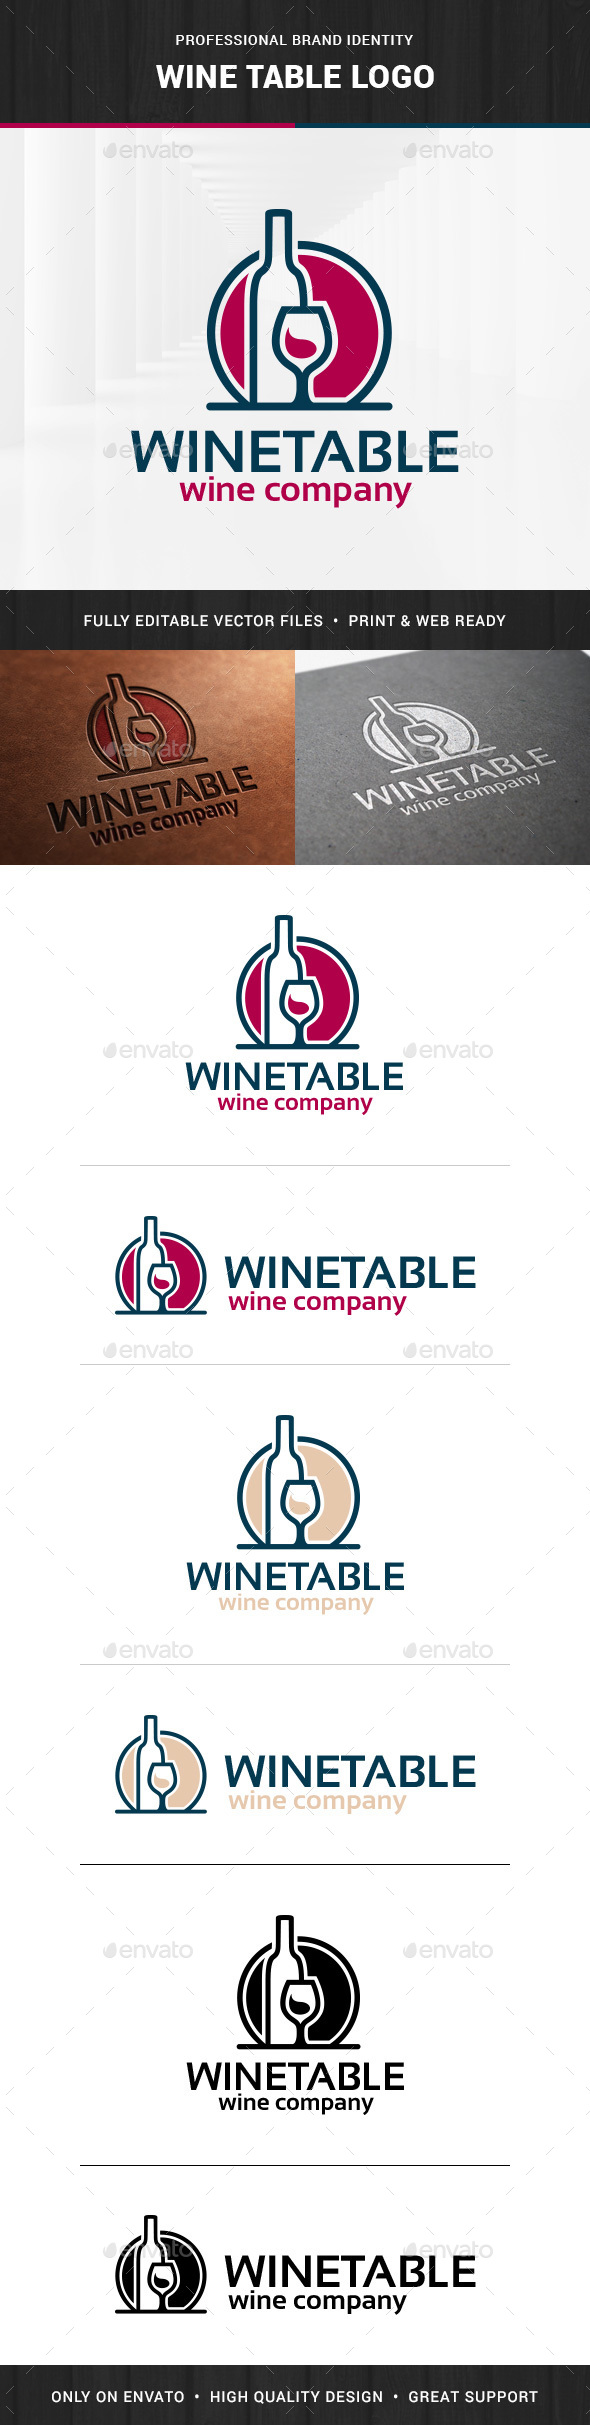 Wine Table Logo Template - Objects Logo Templates